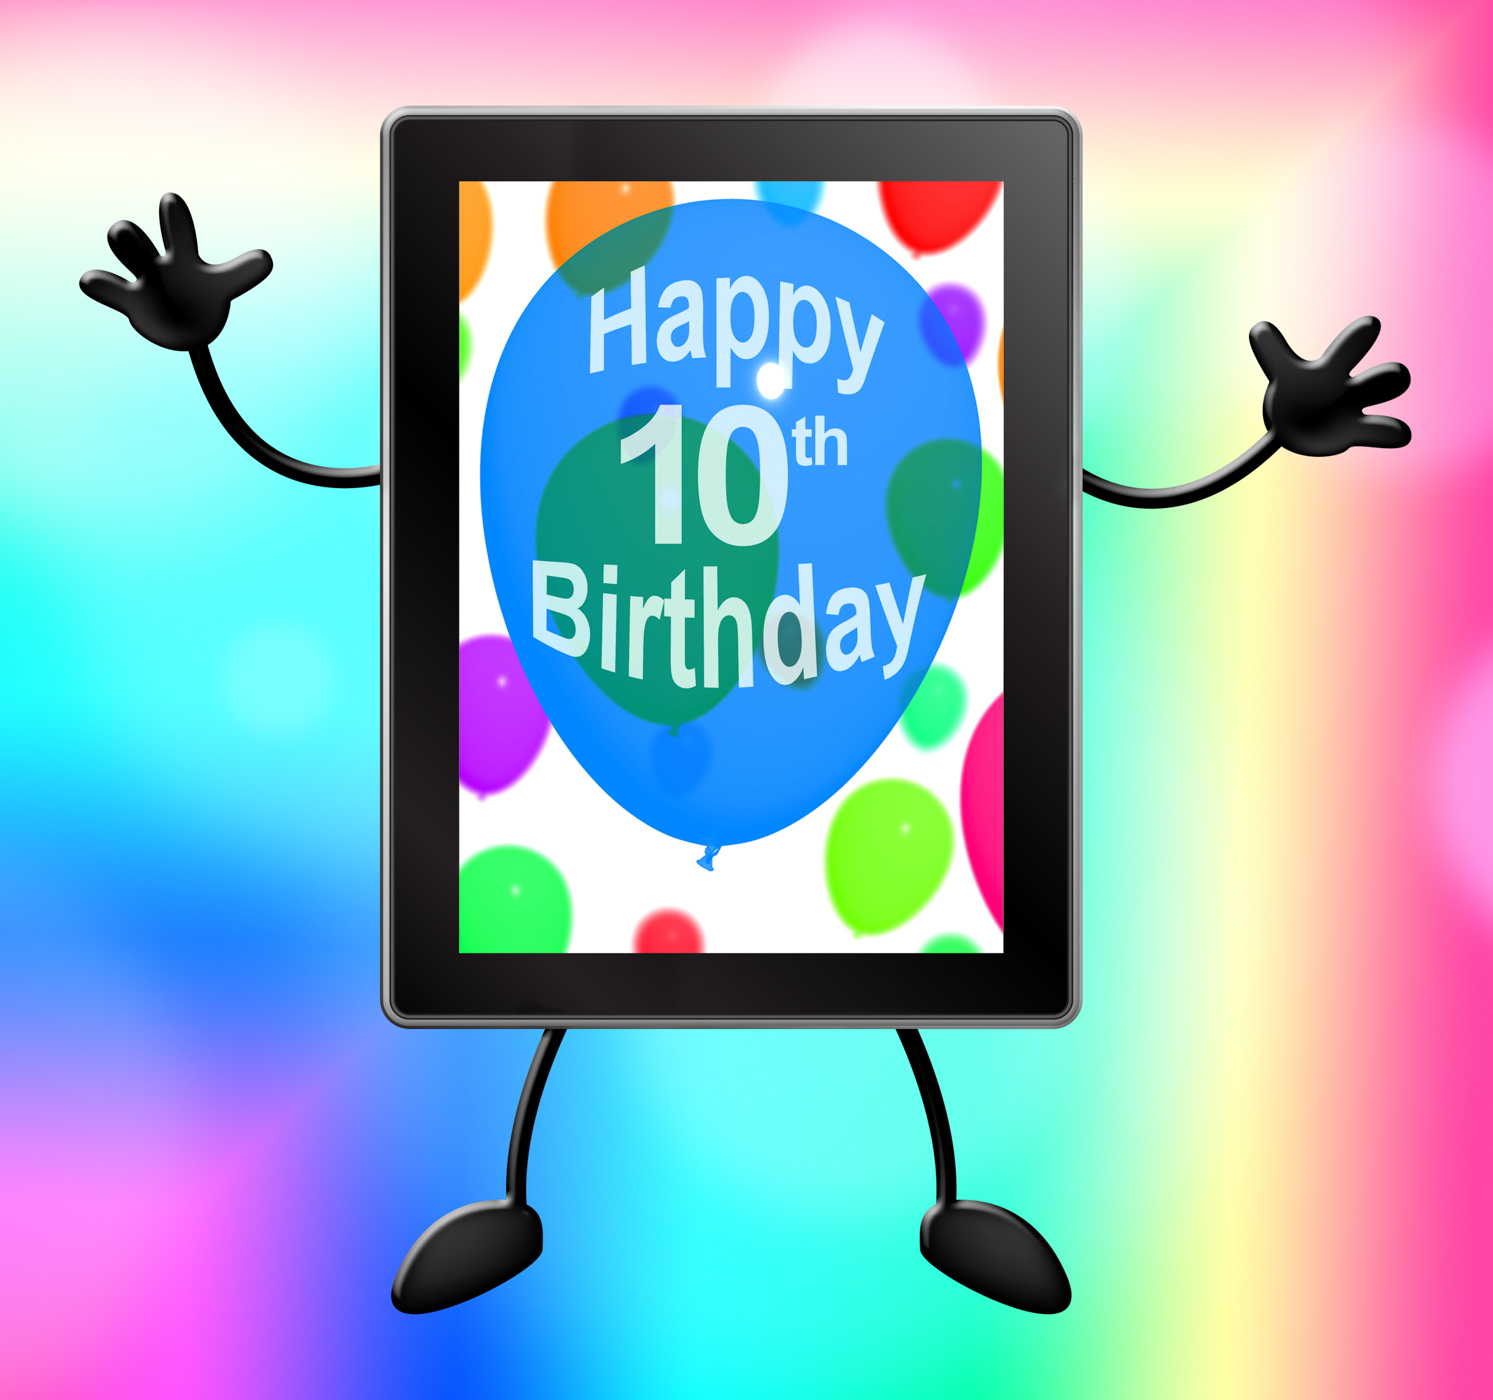 Multicolored balloons for celebrating a 10th or tenth birthday tablet photo